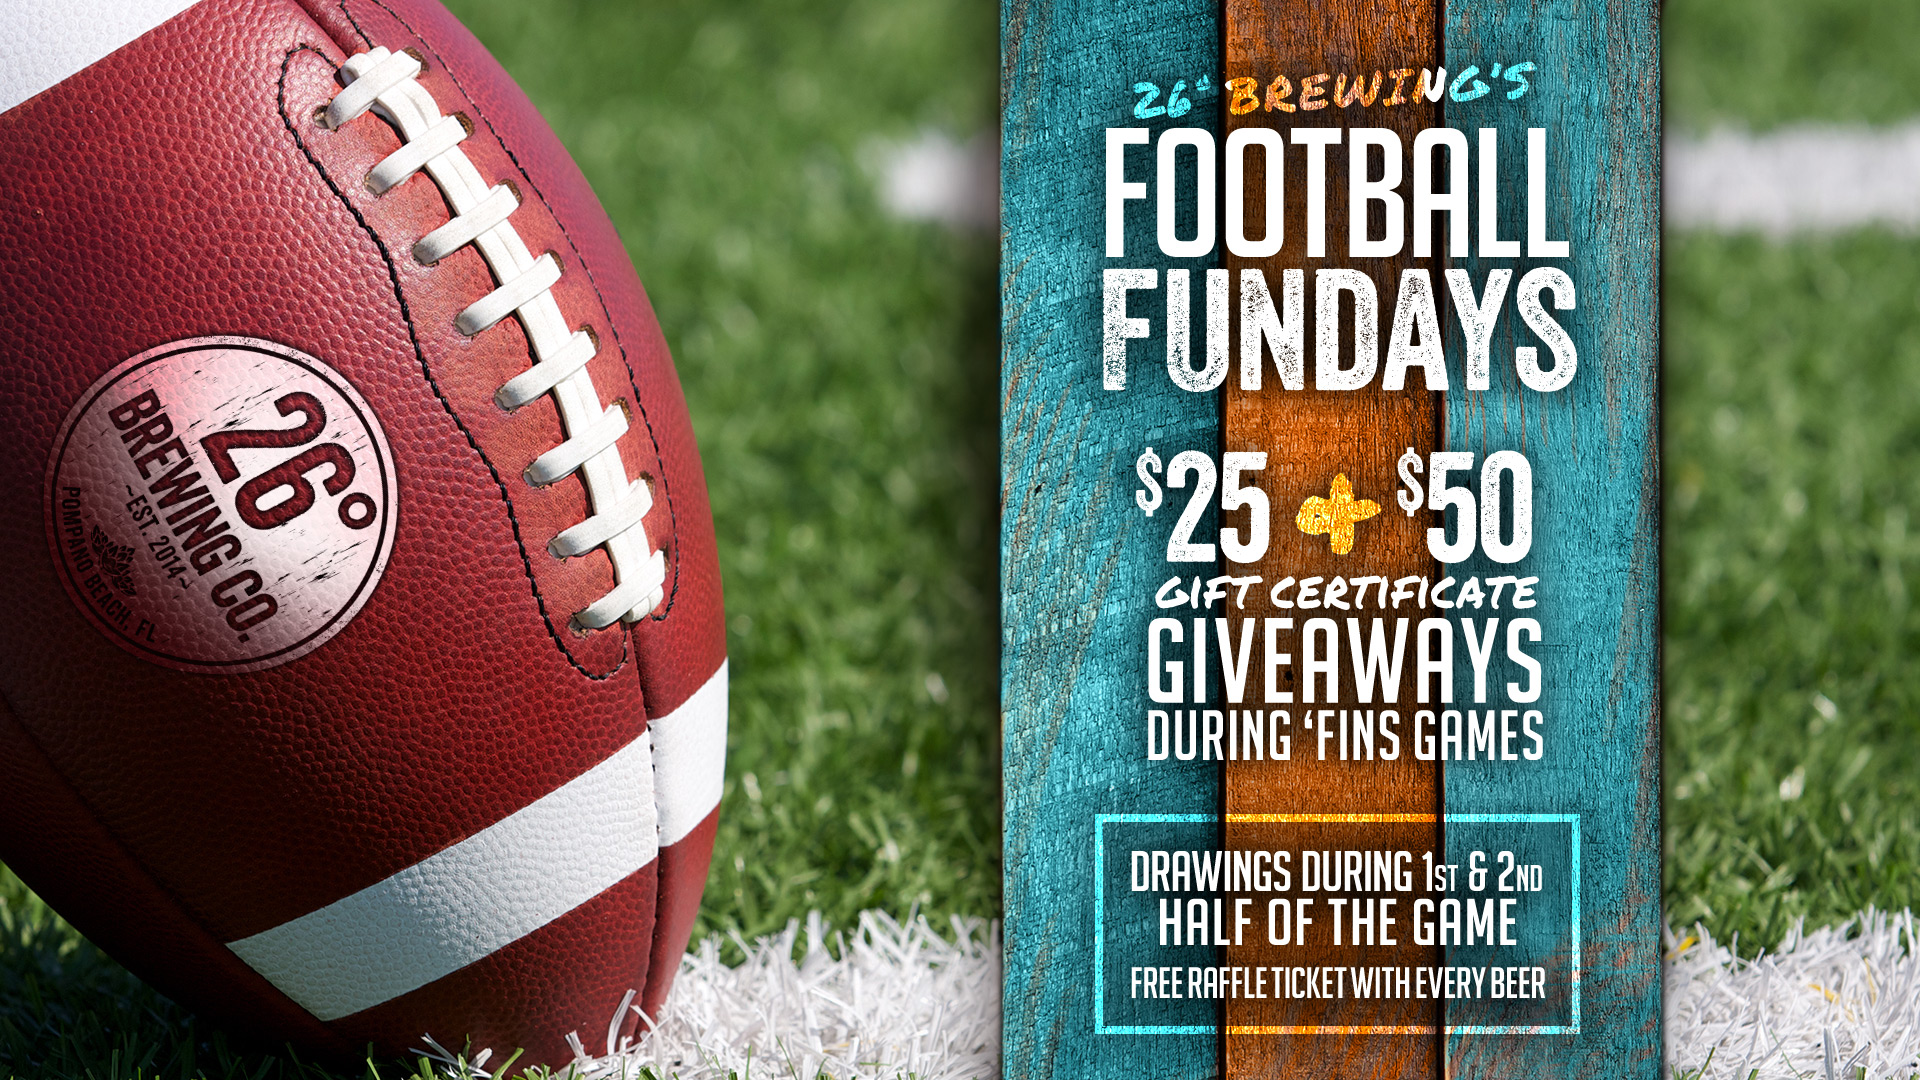 26BREW-17-0099-Football-Promotion